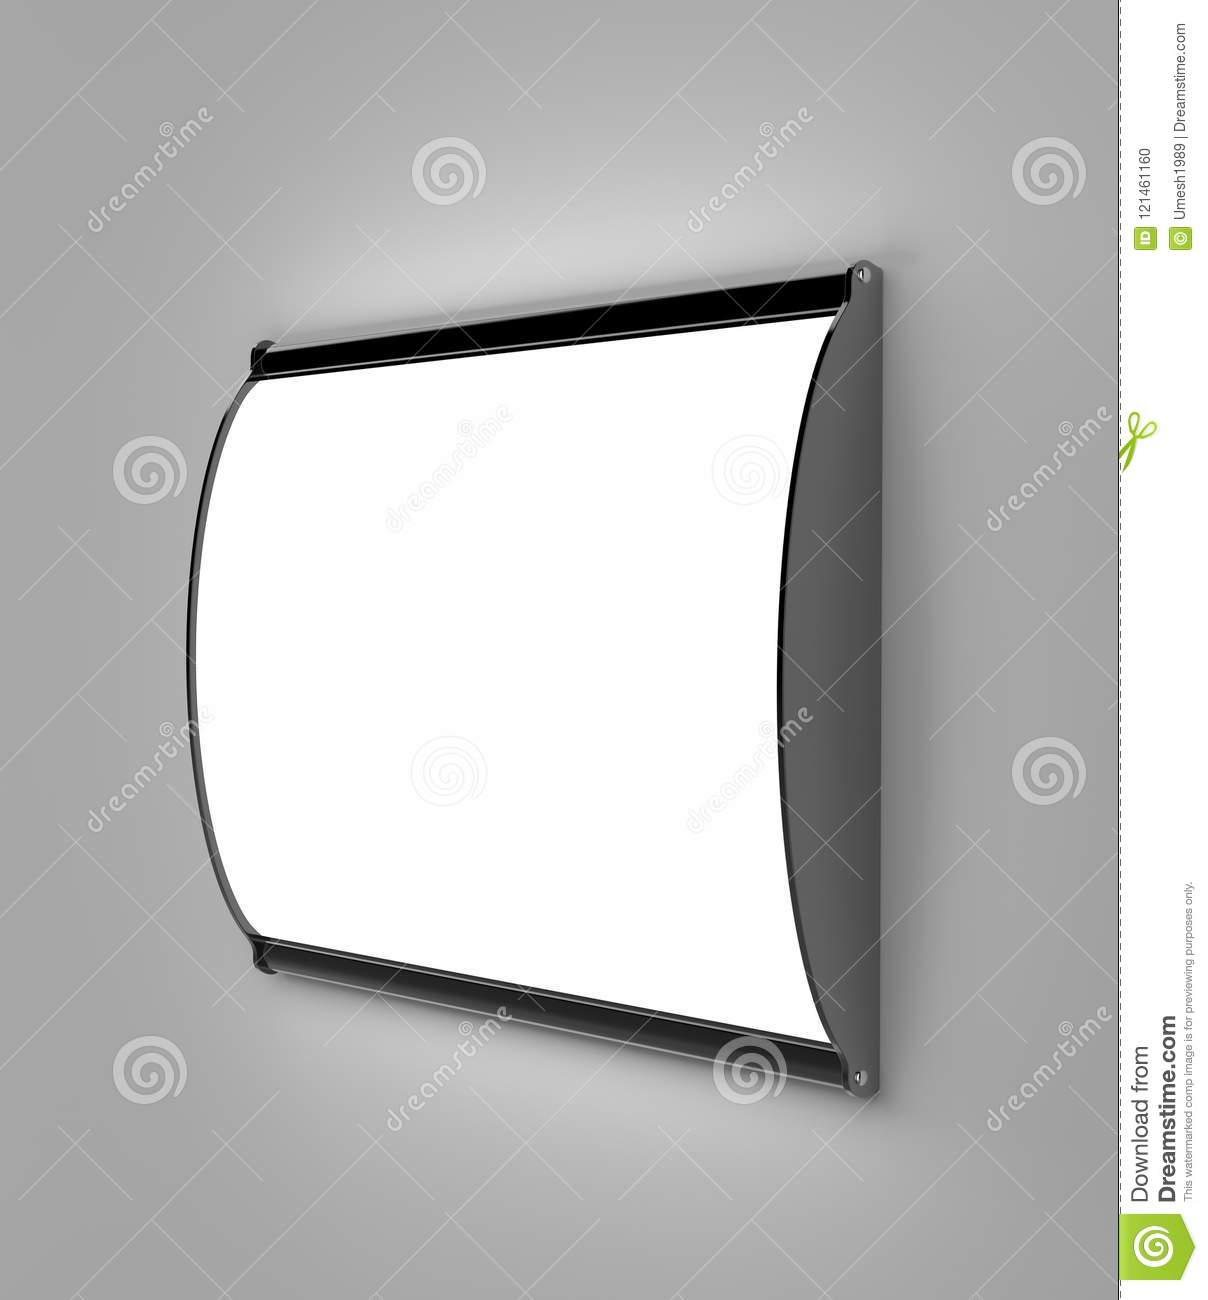 Horizontal Convex LED Light Box Single Sided Poster Display Or Sign ...